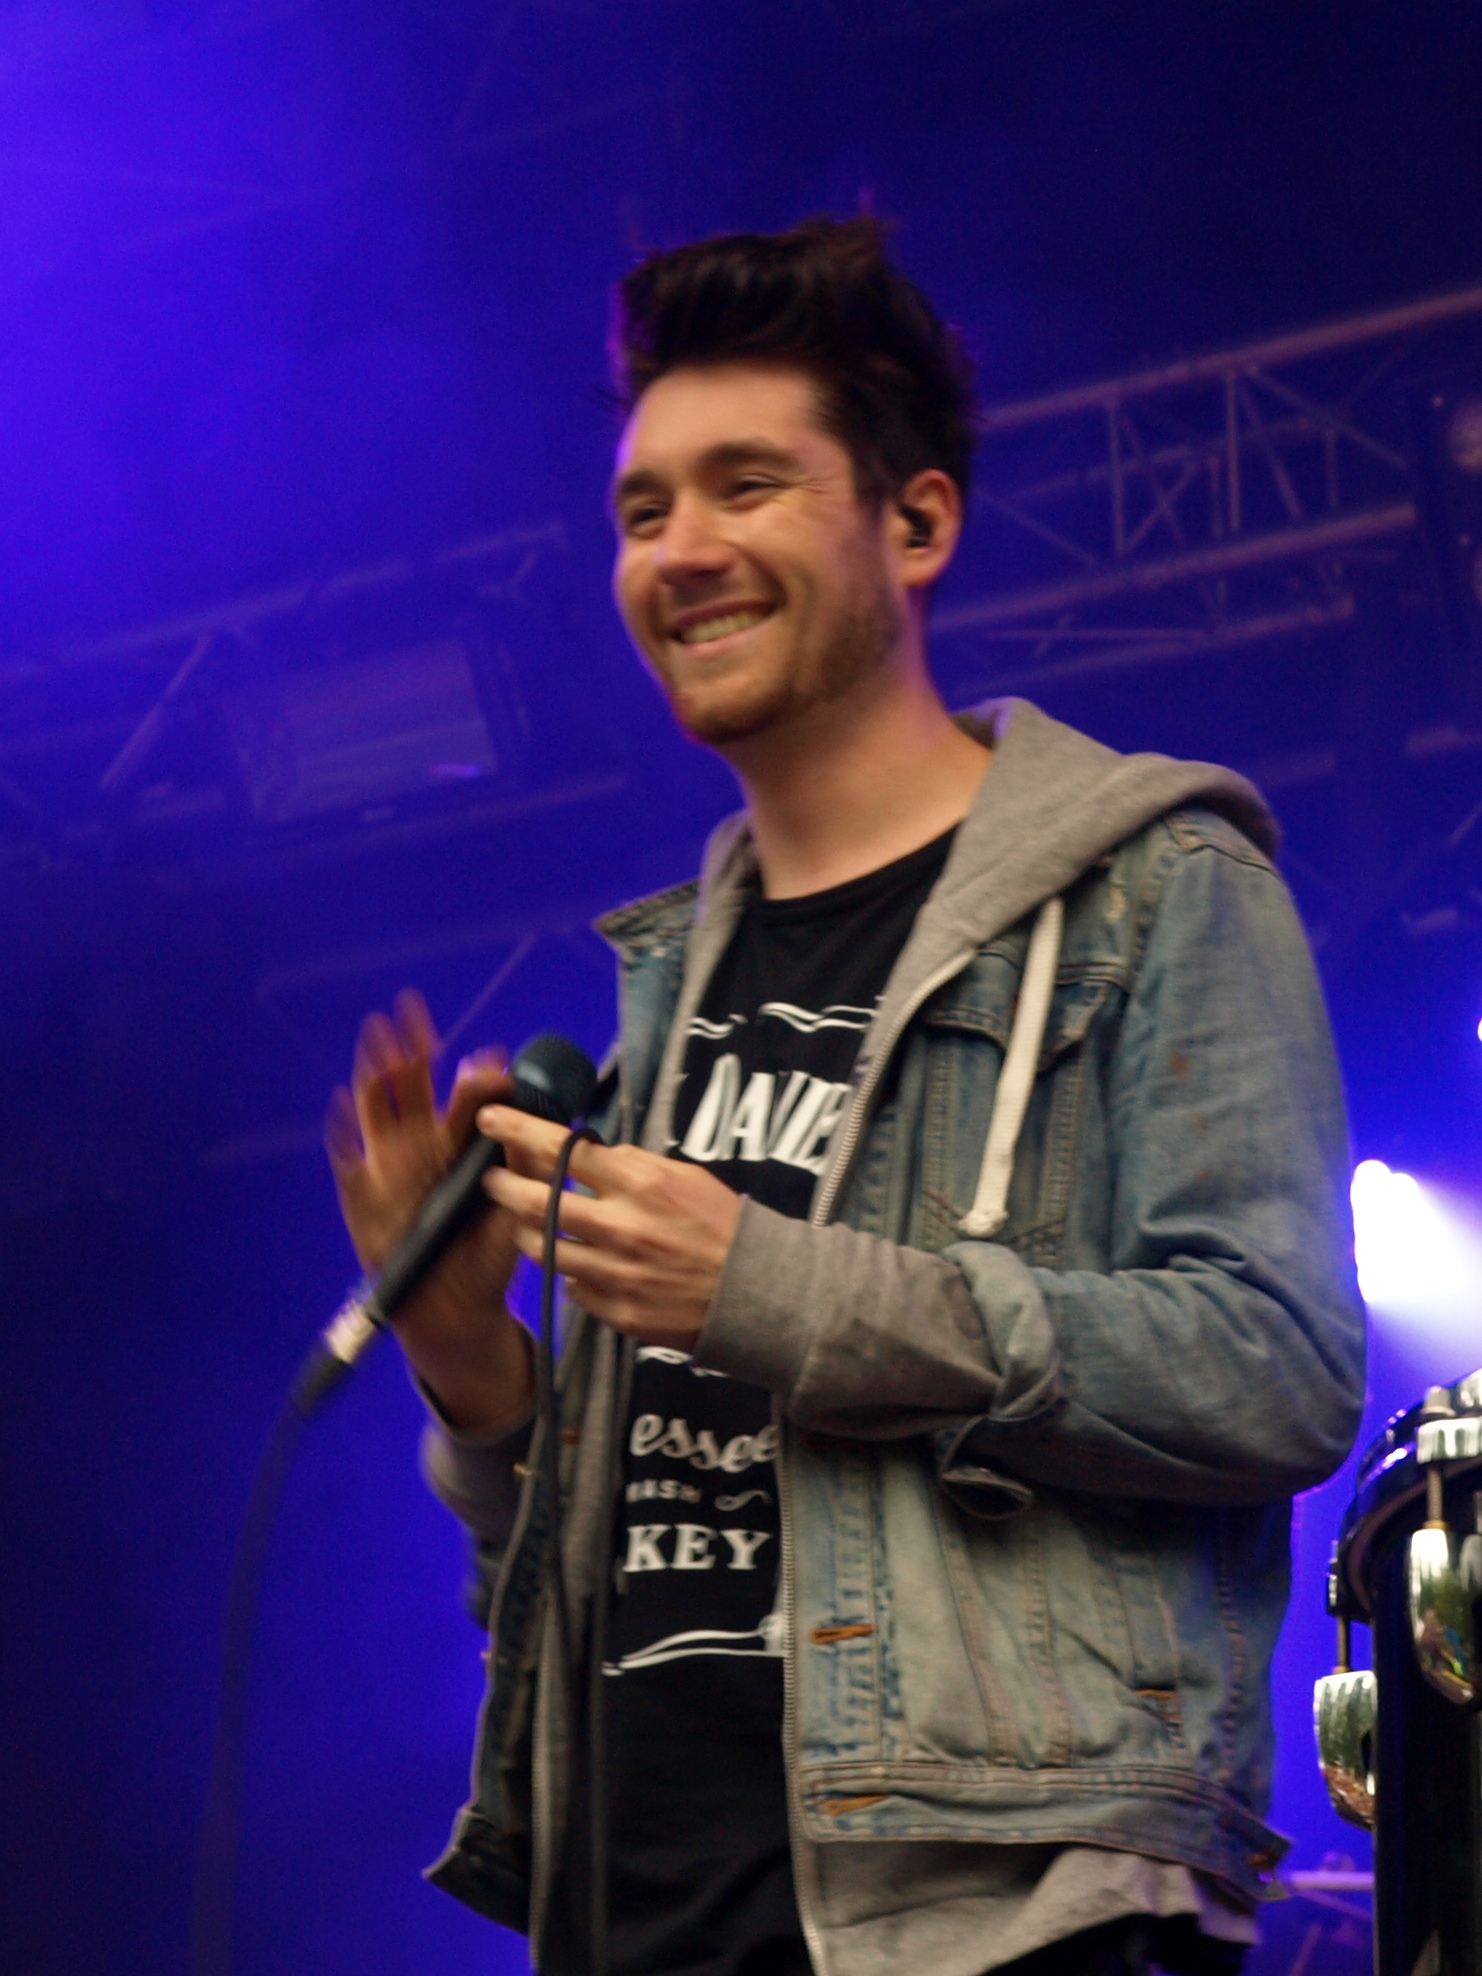 Dan Smith at Provinssirock festival 2013 in Seinäjoki, Finland